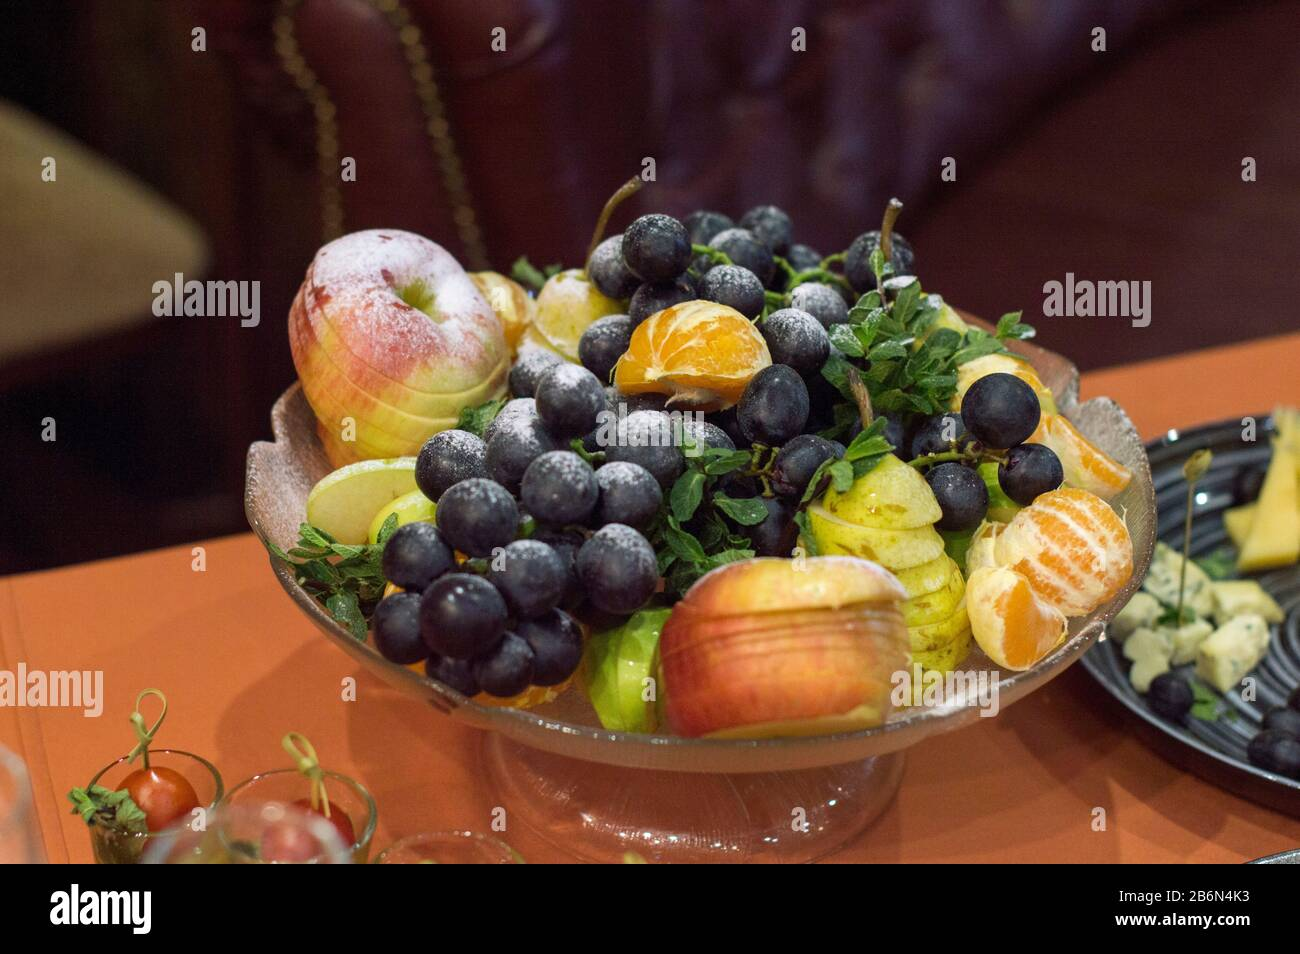 Vase with fruits on the table. Sliced and cooked for dinner. Stock Photo